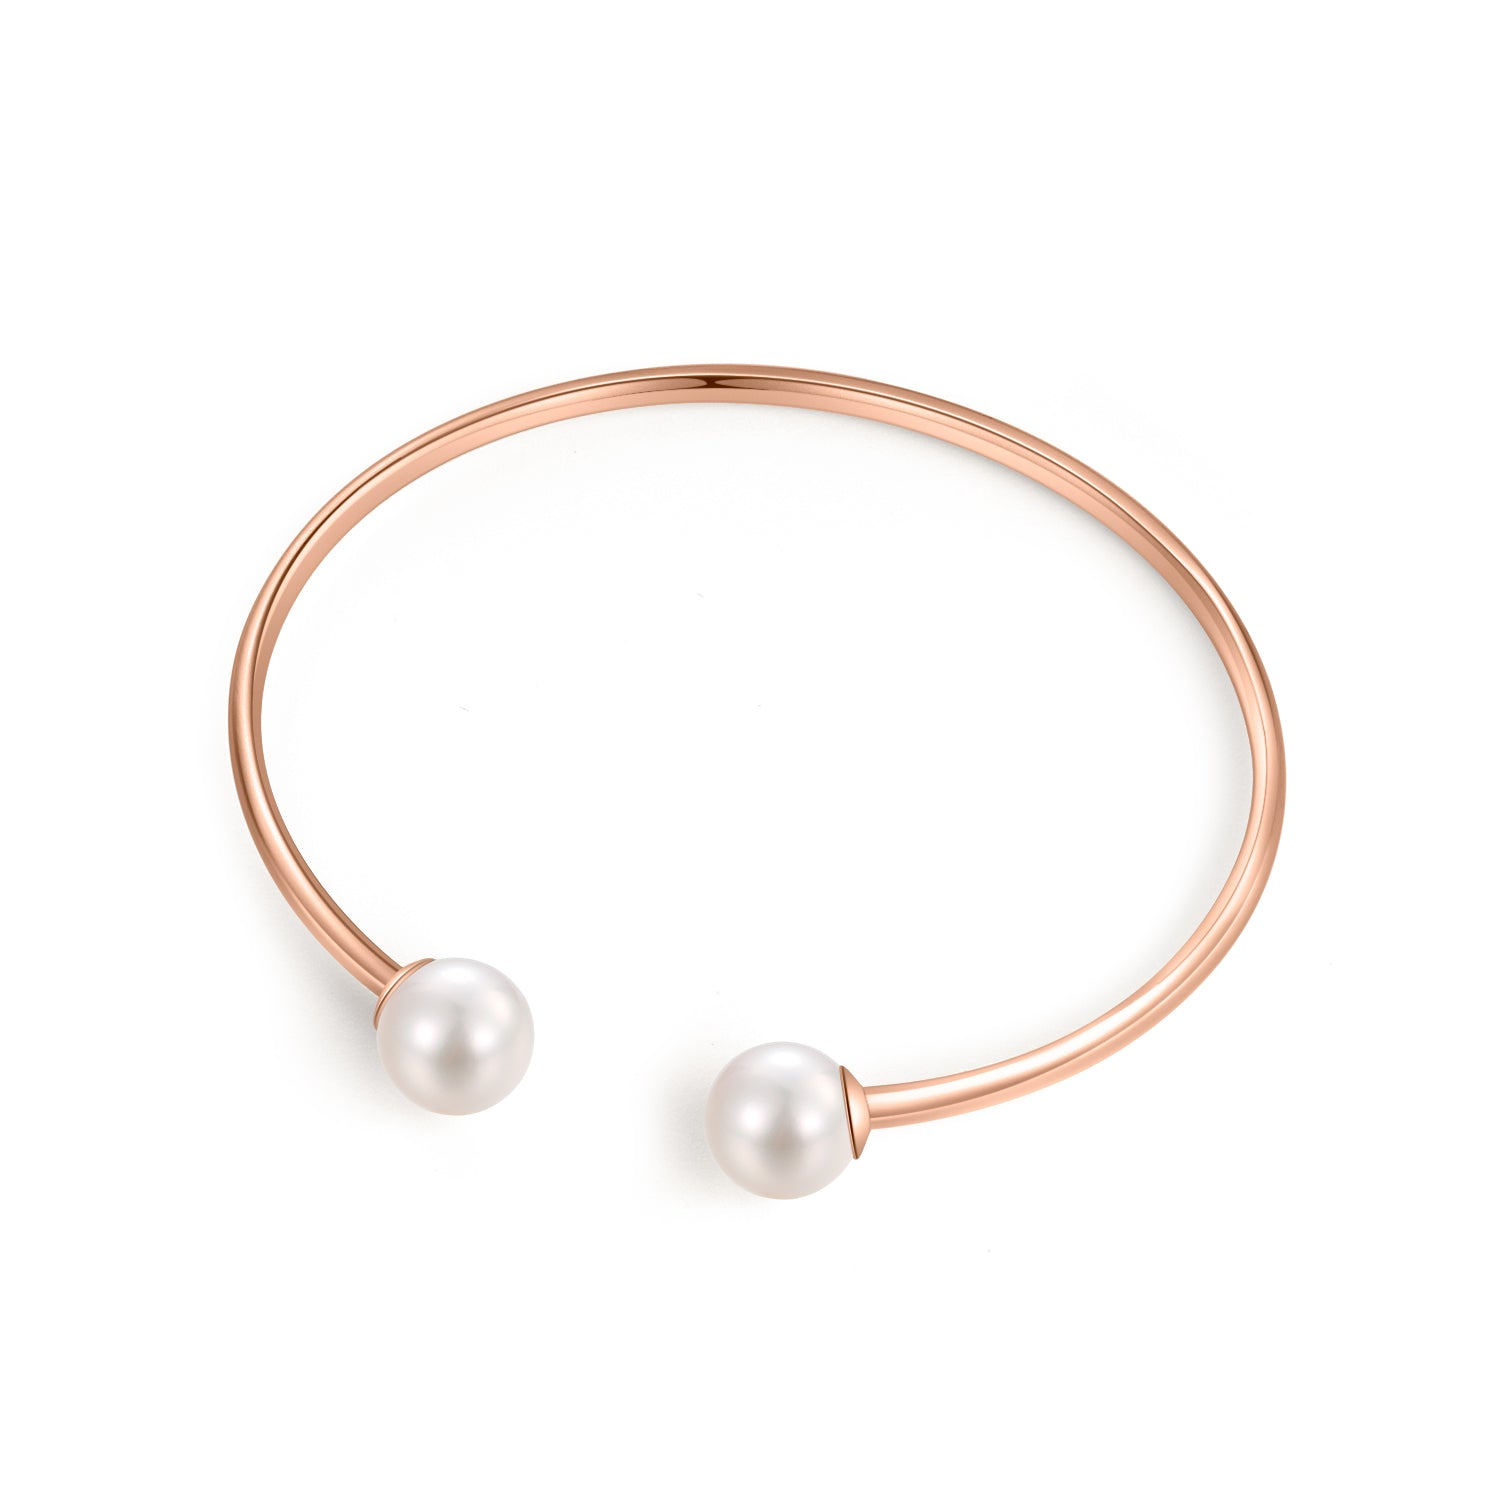 18K Rose Gold Bangle With 8-8.5mm Akoya Pearl - Woment Designer Jewelry